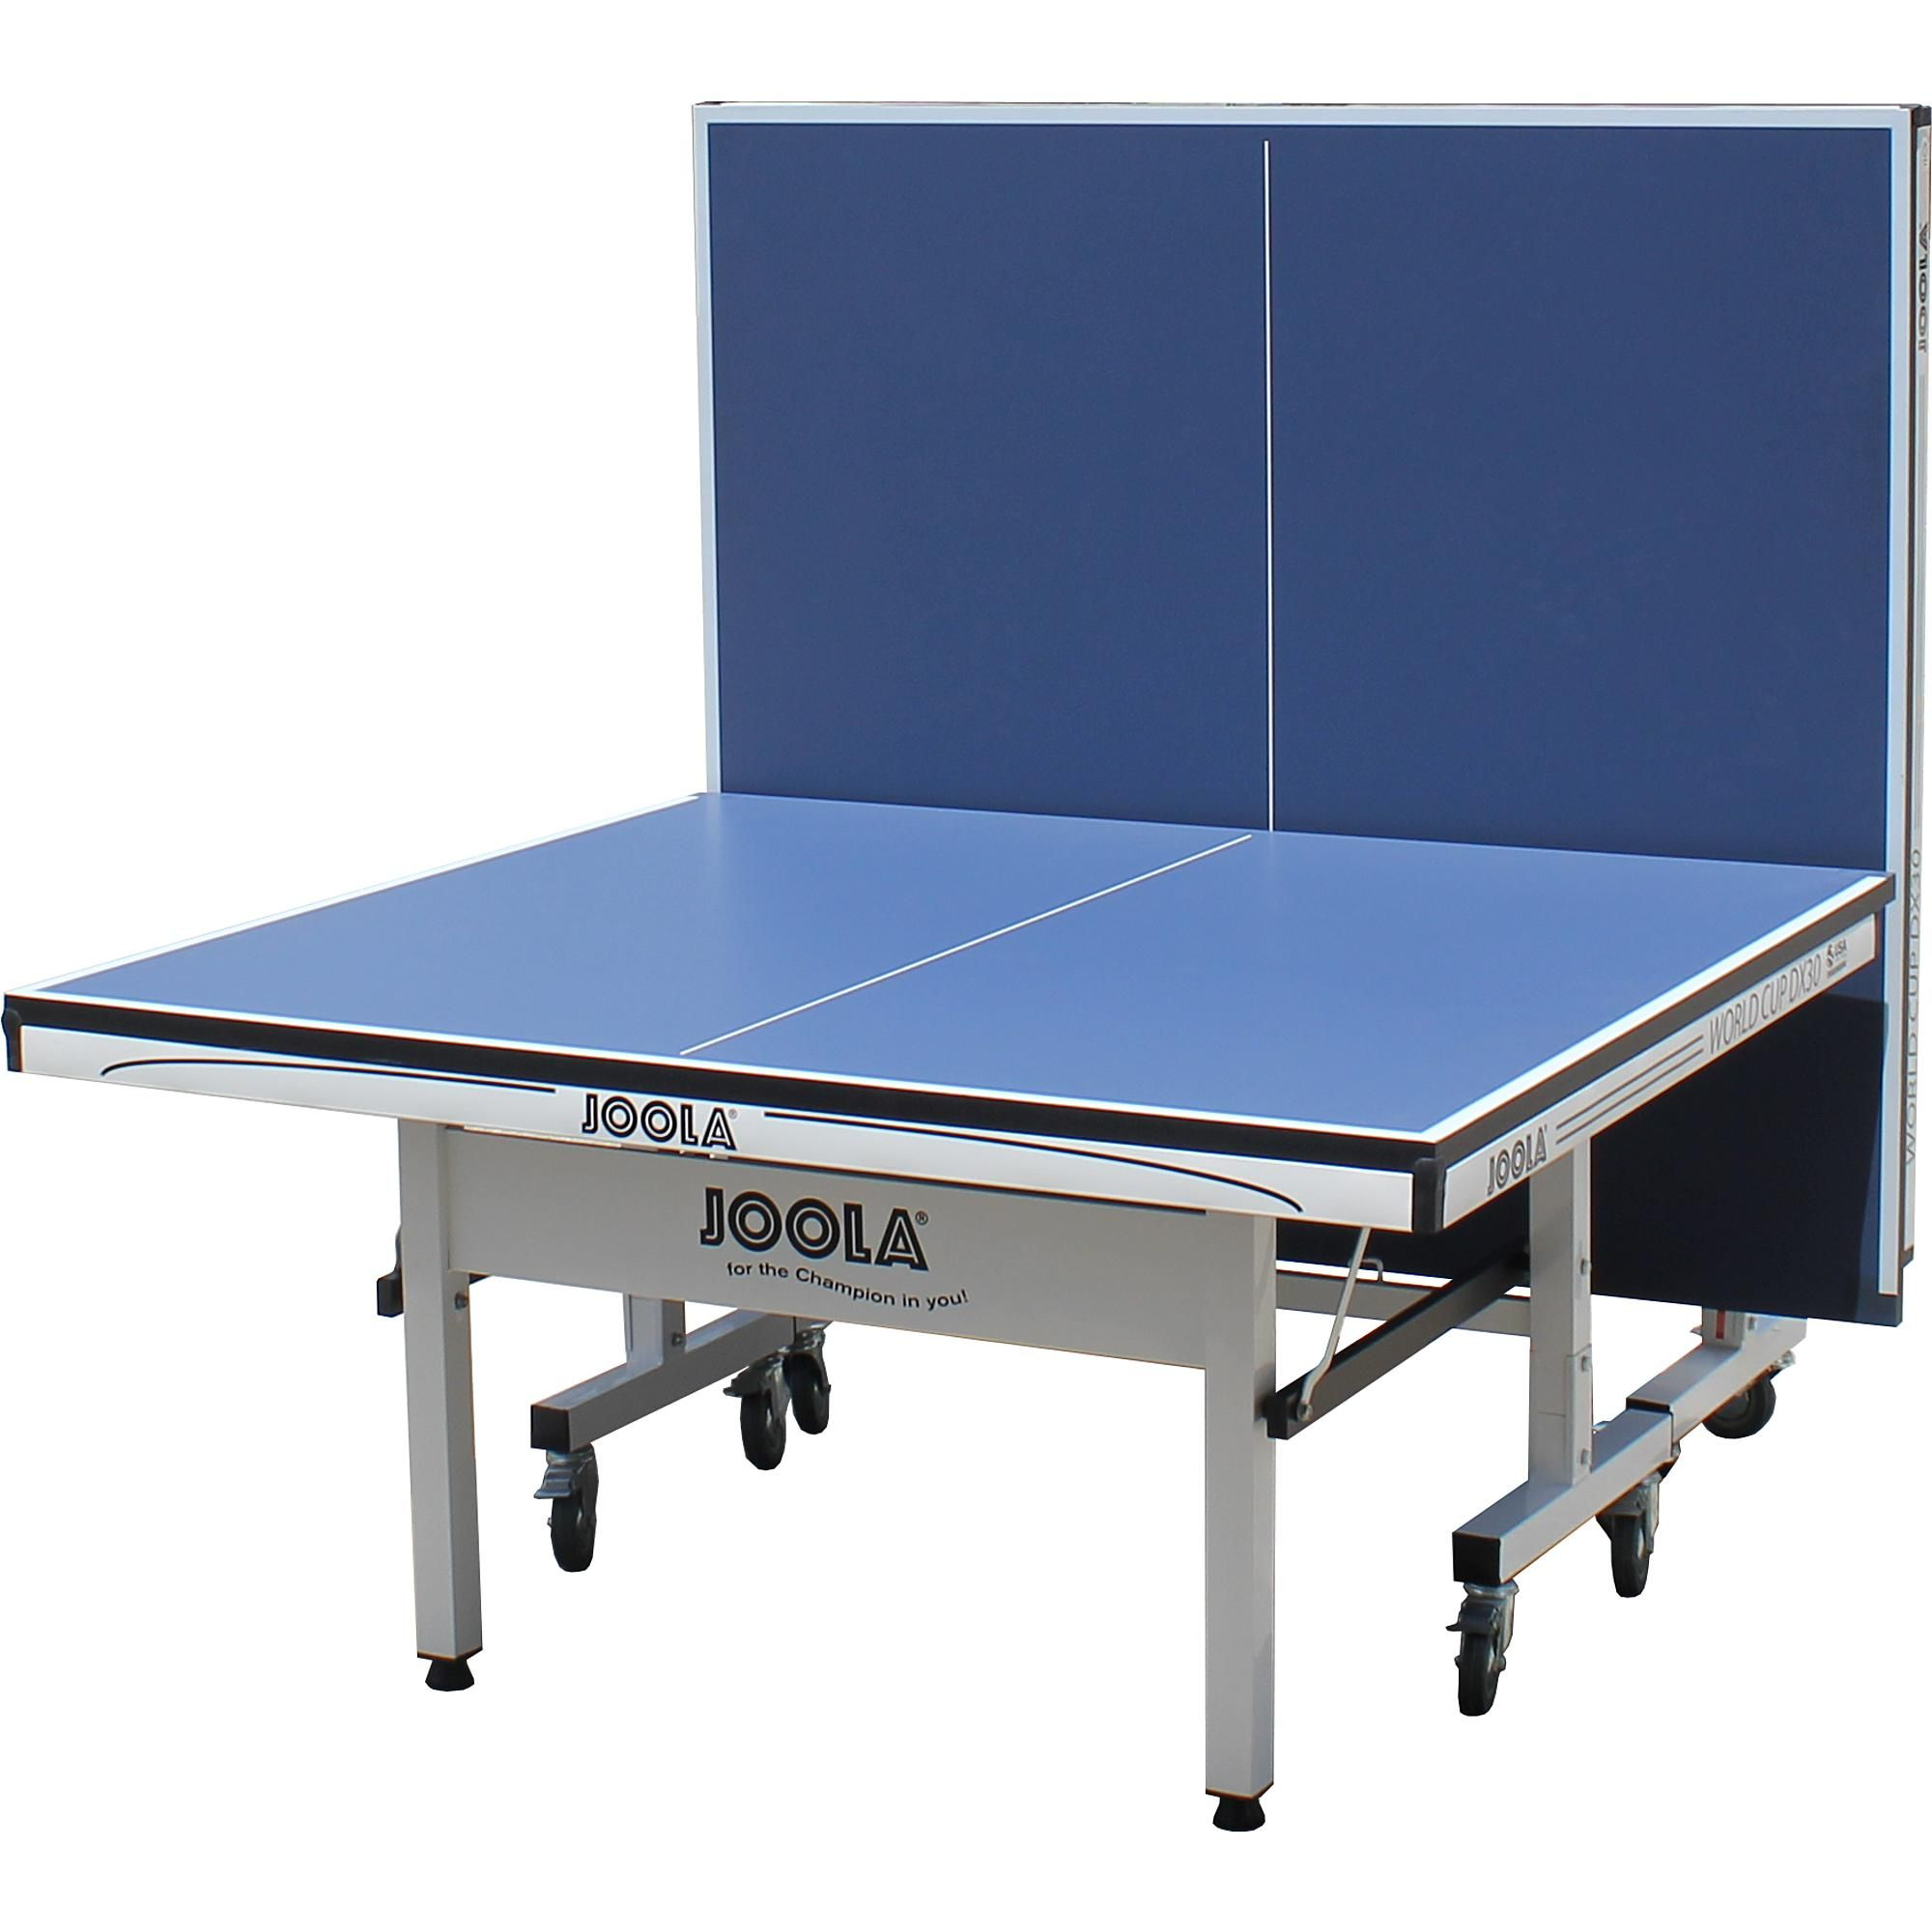 Joola World Cup Dx30 30mm Table Tennis 2 Piece Table Blue Table Tennis Table Ping Pong